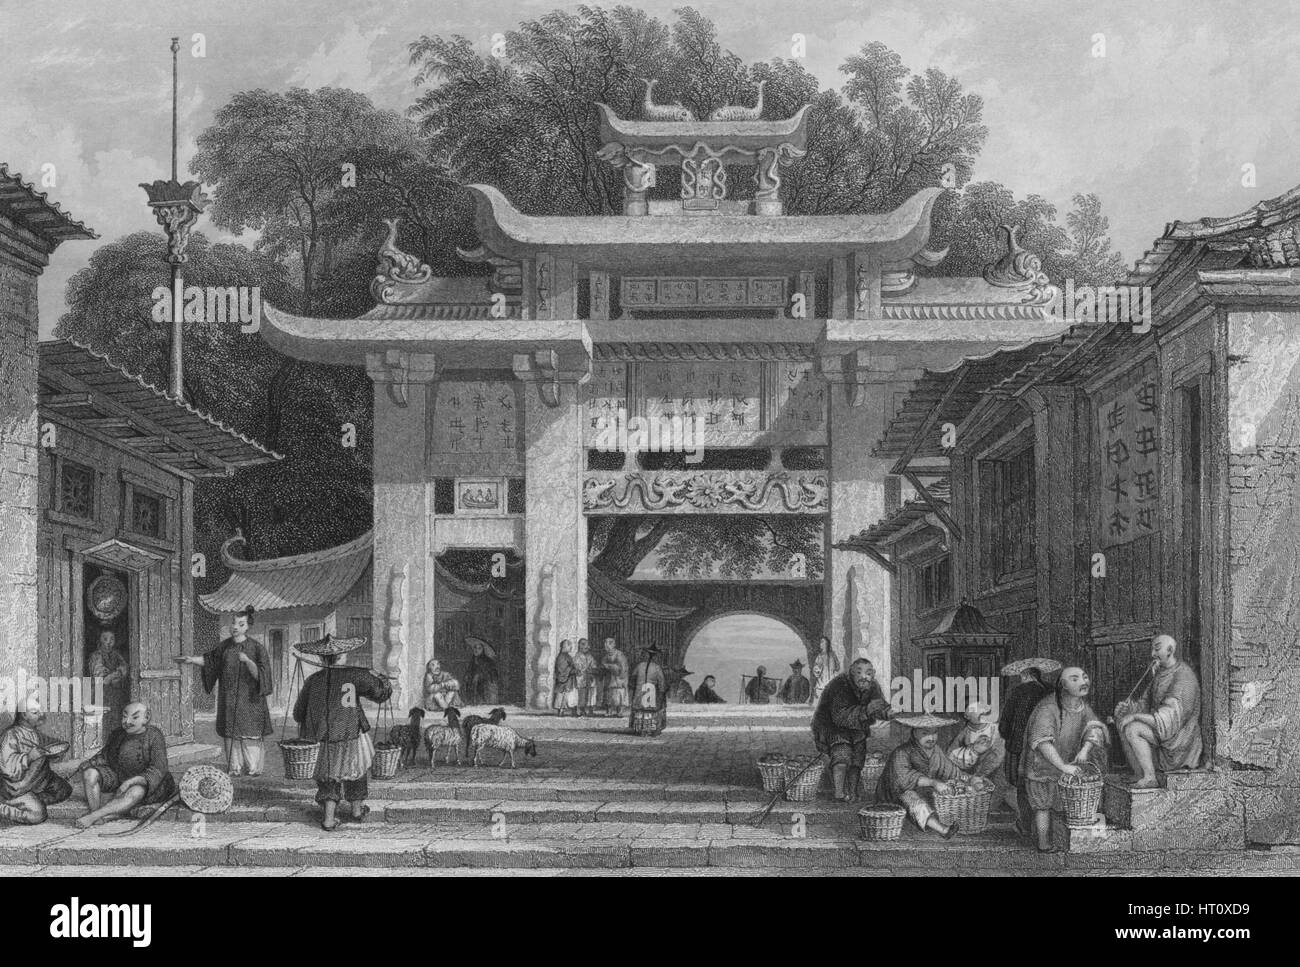 'Entrance into the City of Amoy', 1843. Artist: S Fisher. - Stock Image